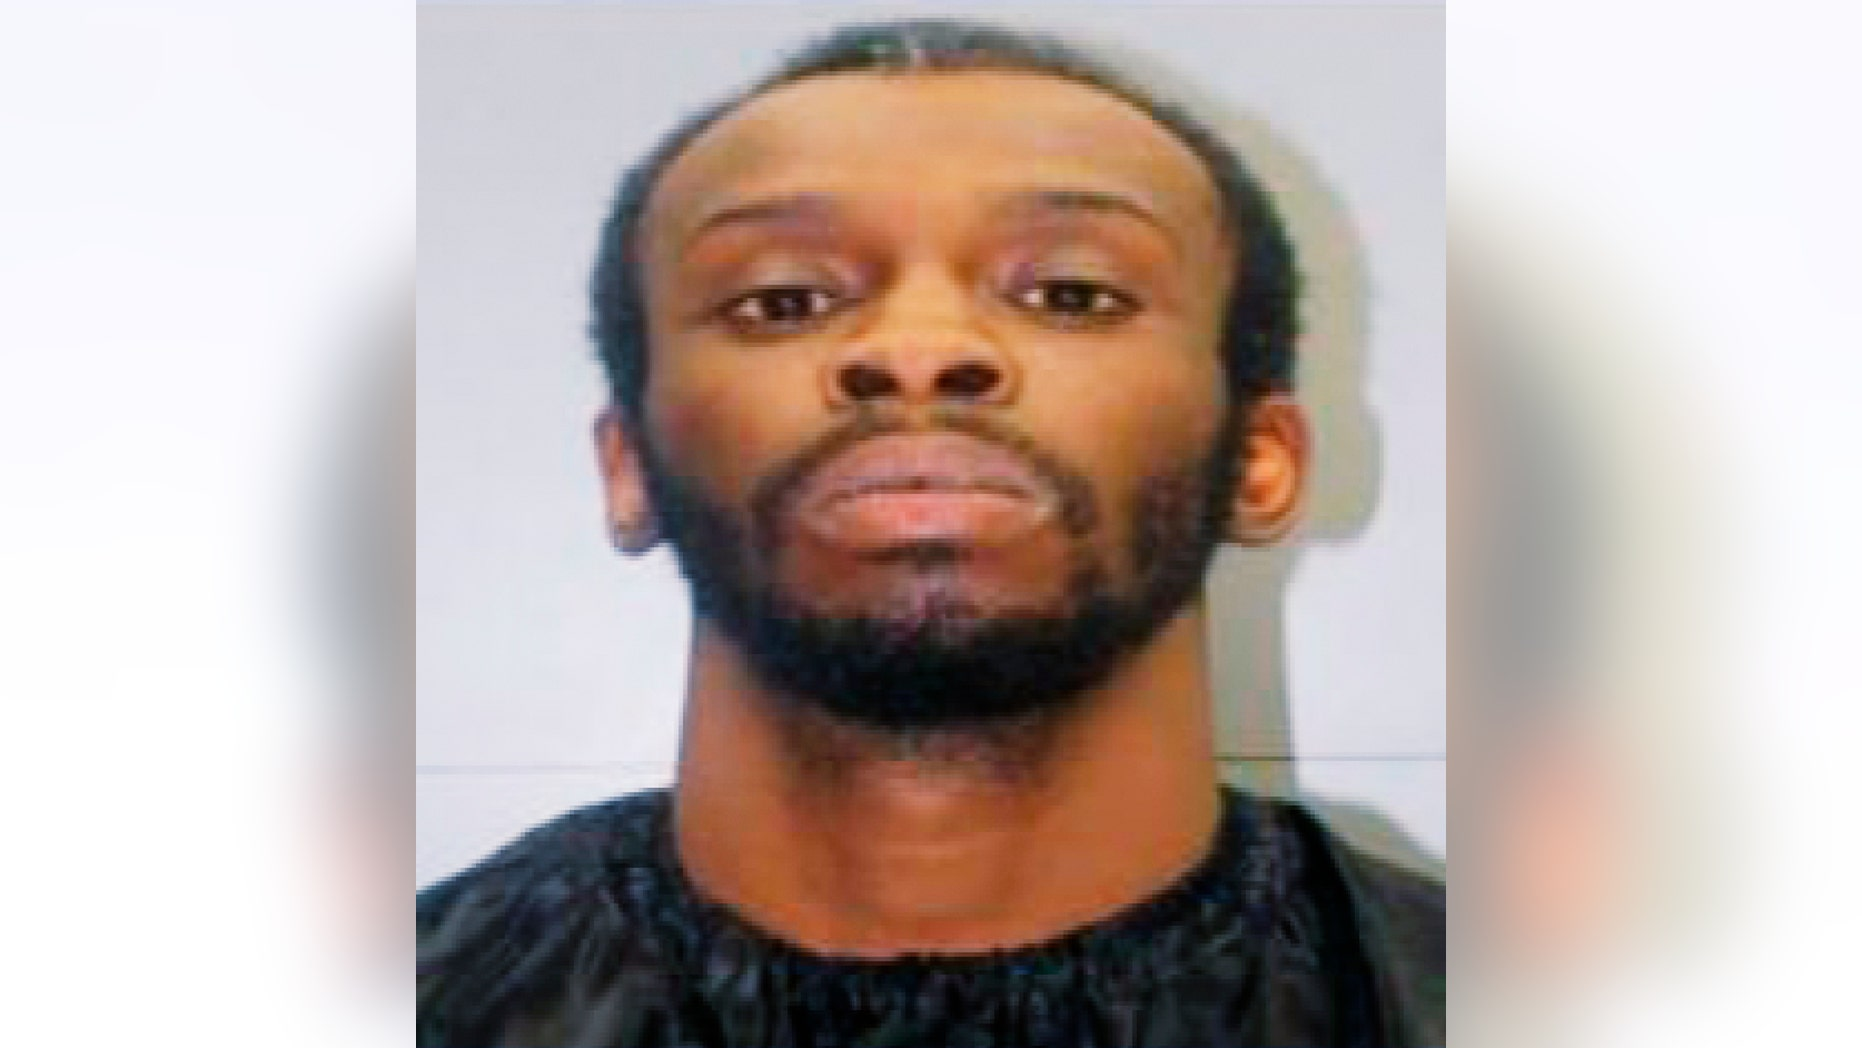 This undated photo provided by the Columbia Police Department shows Nathaniel David Rowland. Police in South Carolina say they've arrested a suspect in connection with the death of a college student. Columbia Police Chief Skip Holbrook said at a news conference that 24-year-old Rowland was detained early Saturday, March 30, 2019, and that blood was found in his car. (Columbia Police Department via AP)